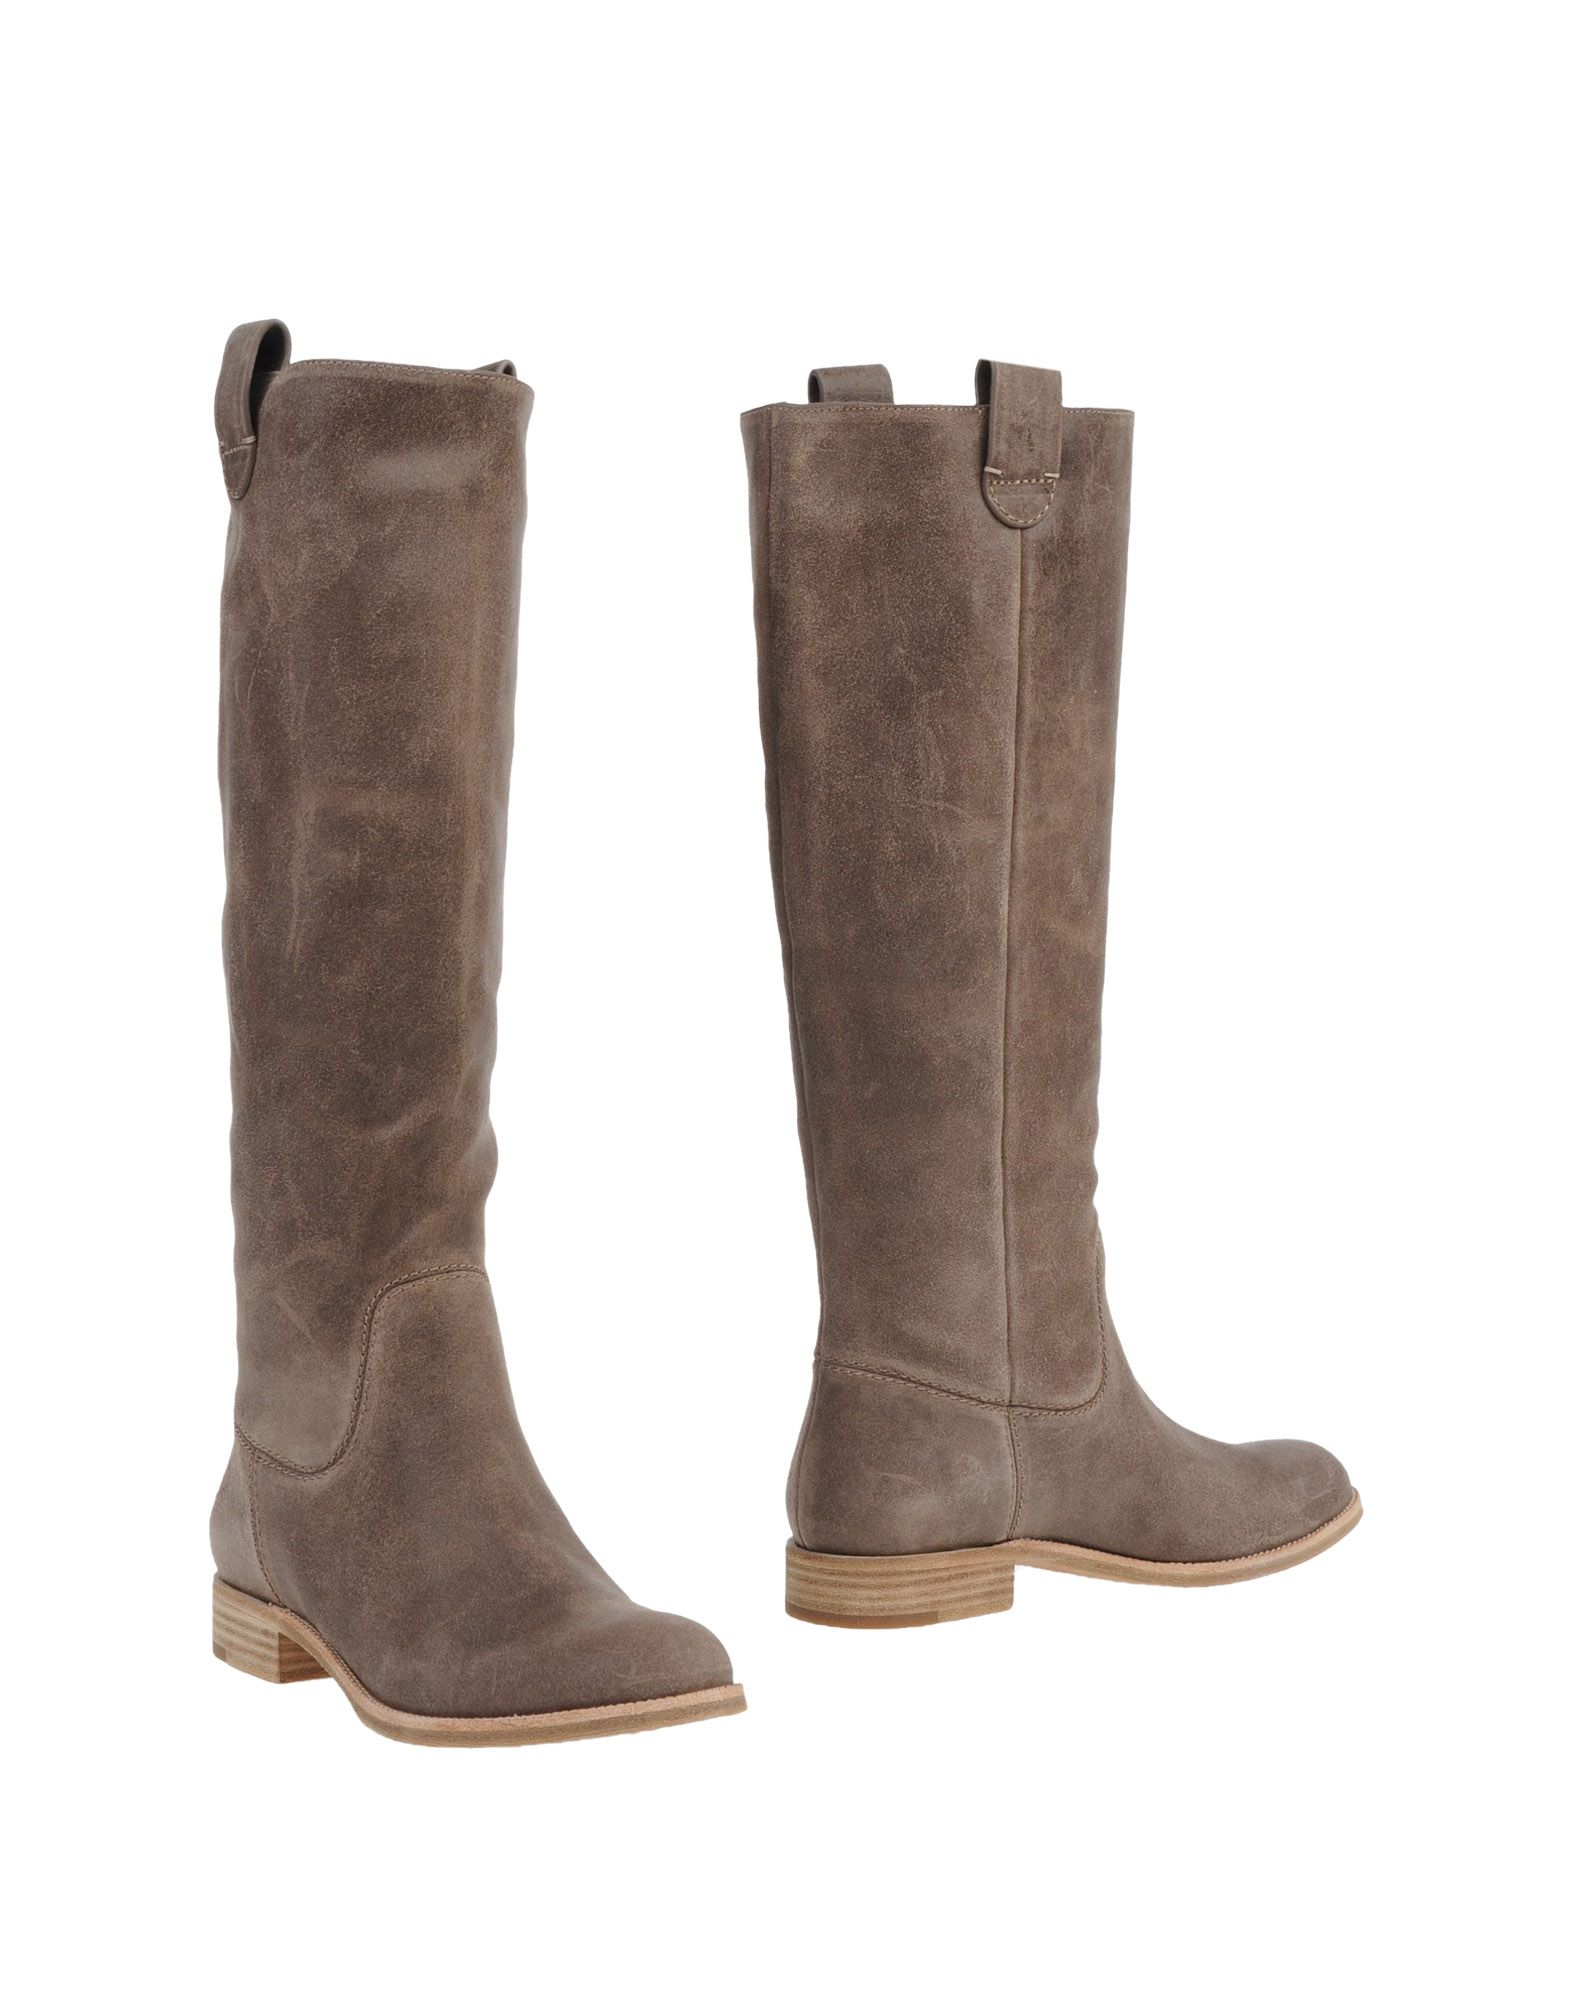 Kors by michael kors Boots in Gray | Lyst